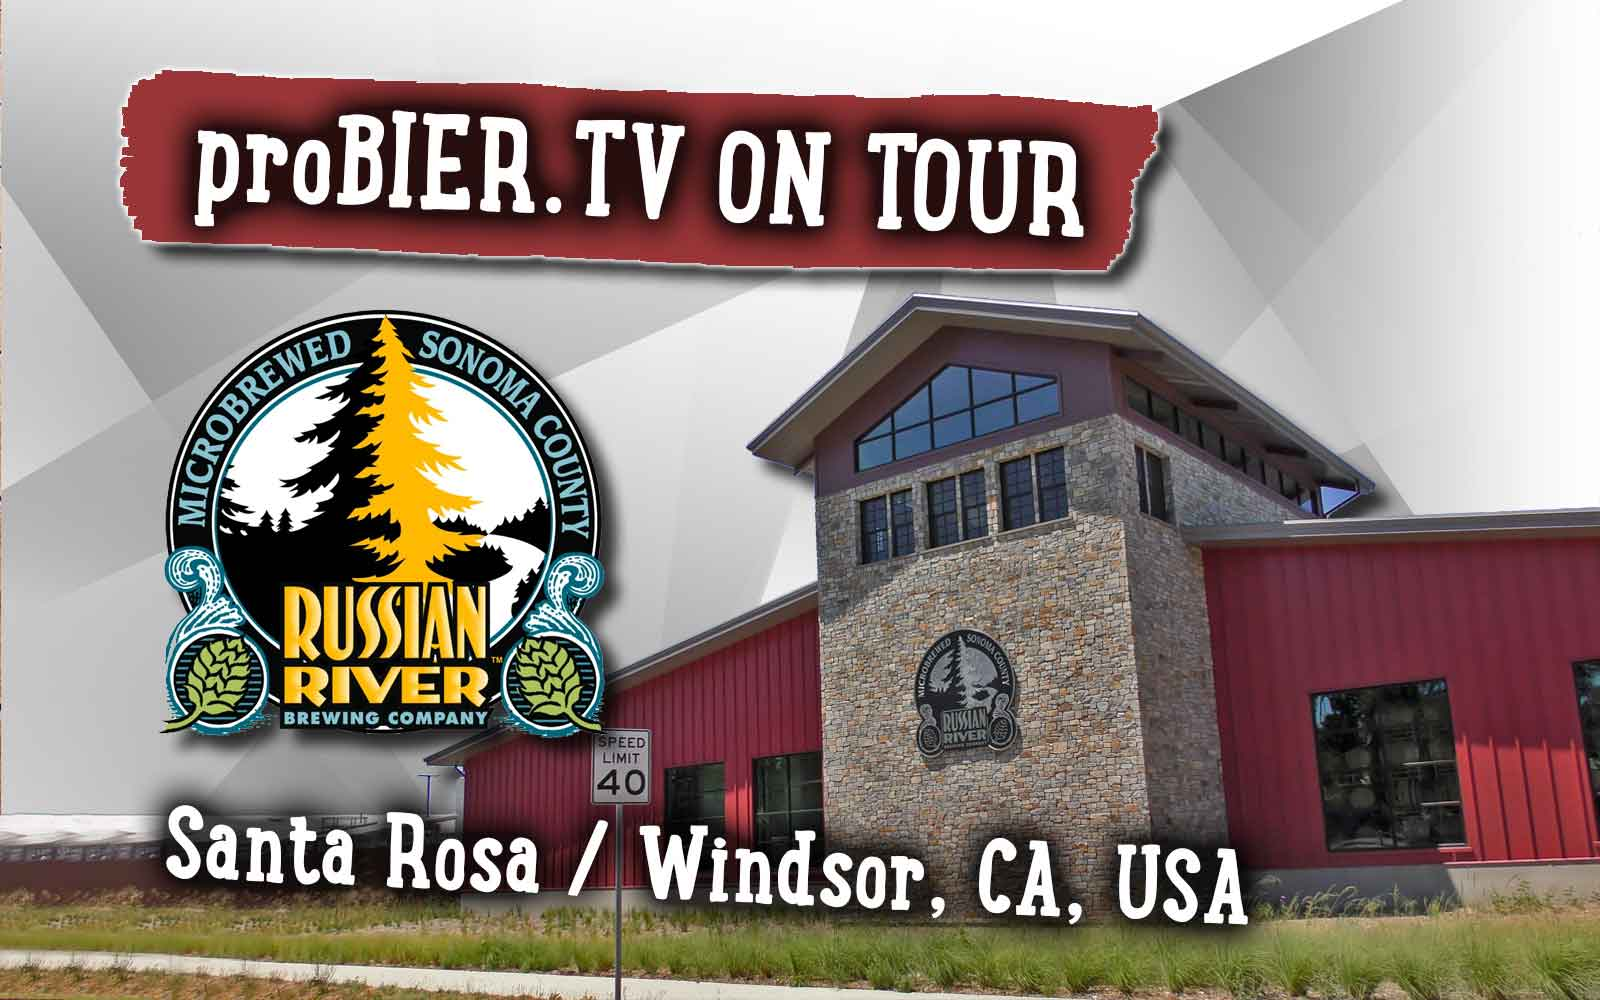 ON TOUR bei der Russian River Brewing Company